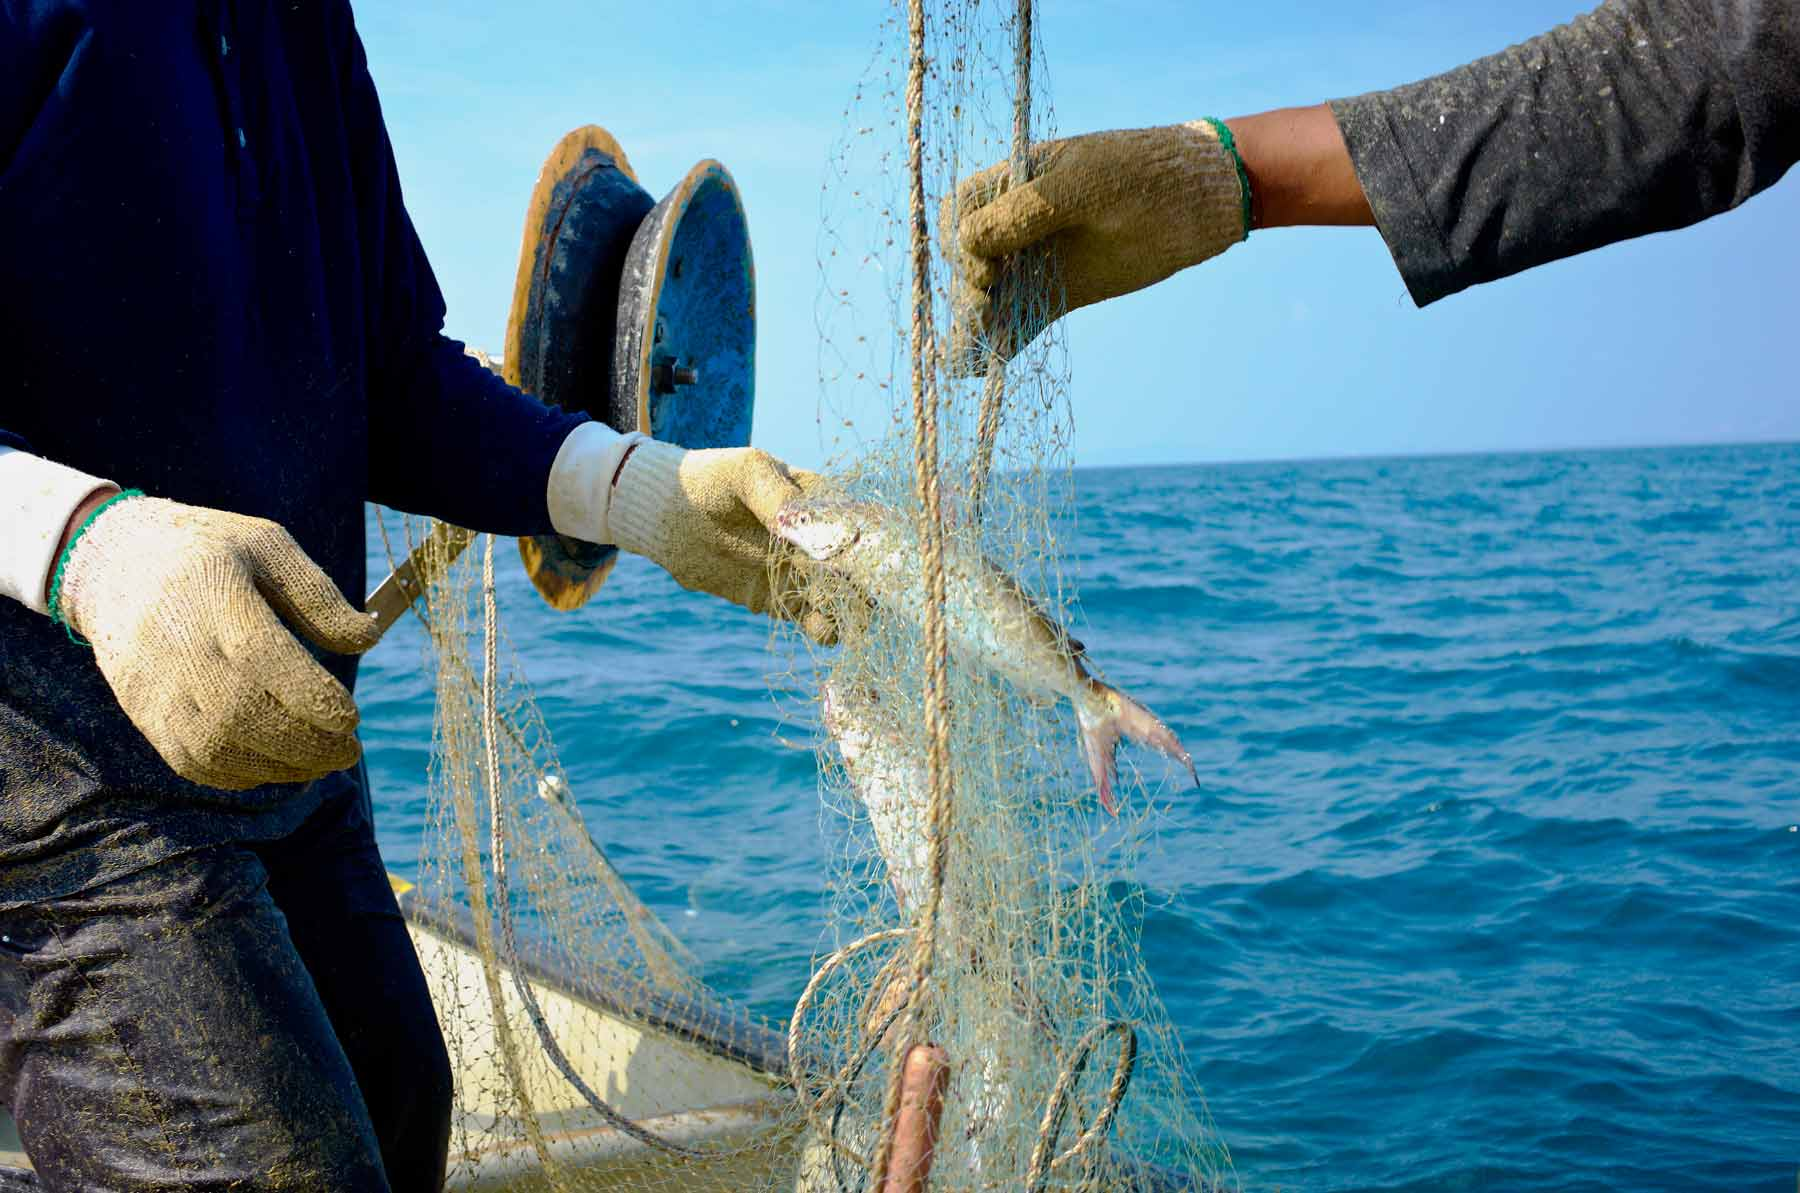 Taking the fish out of the nets